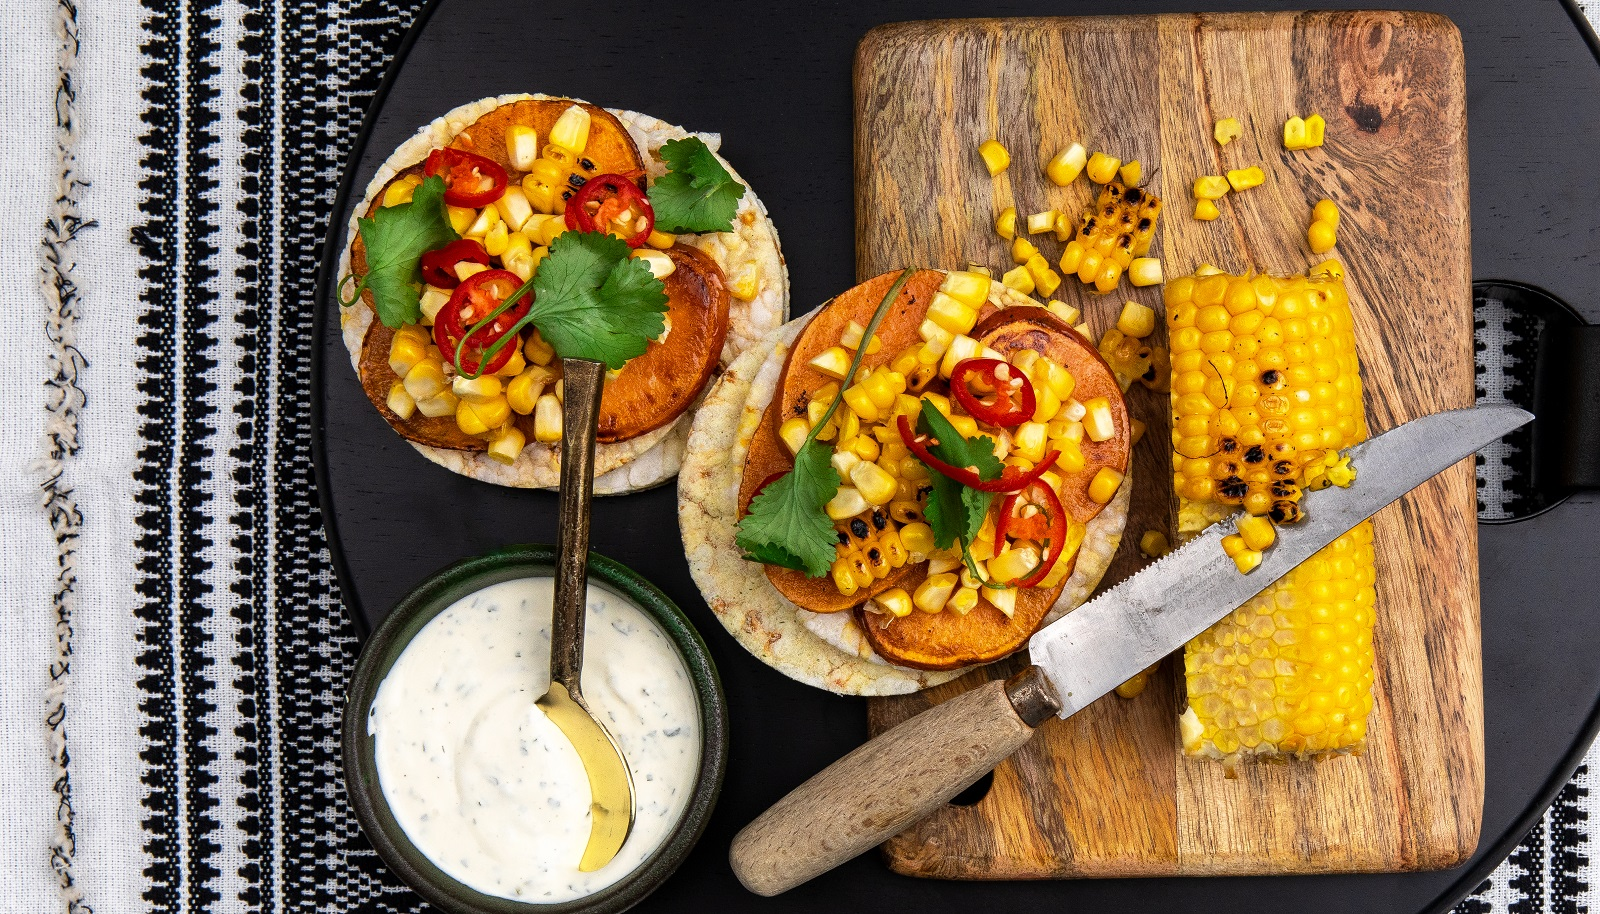 Grilled sweet potato, corn, coriander & ranch dressing on Corn Thins slices